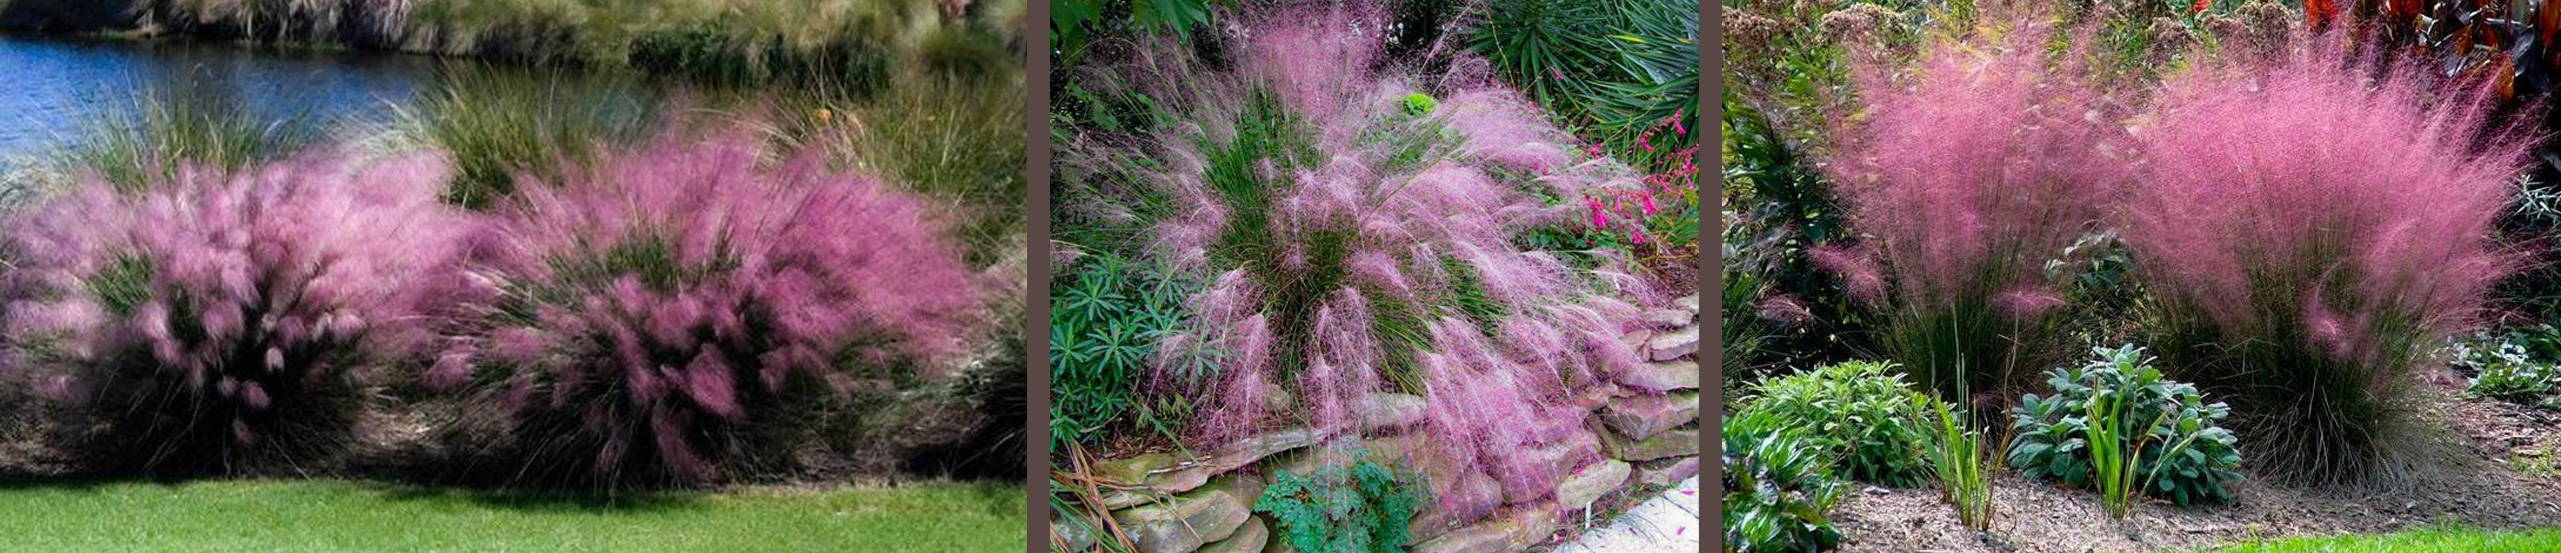 when does pink muhly grass bloom